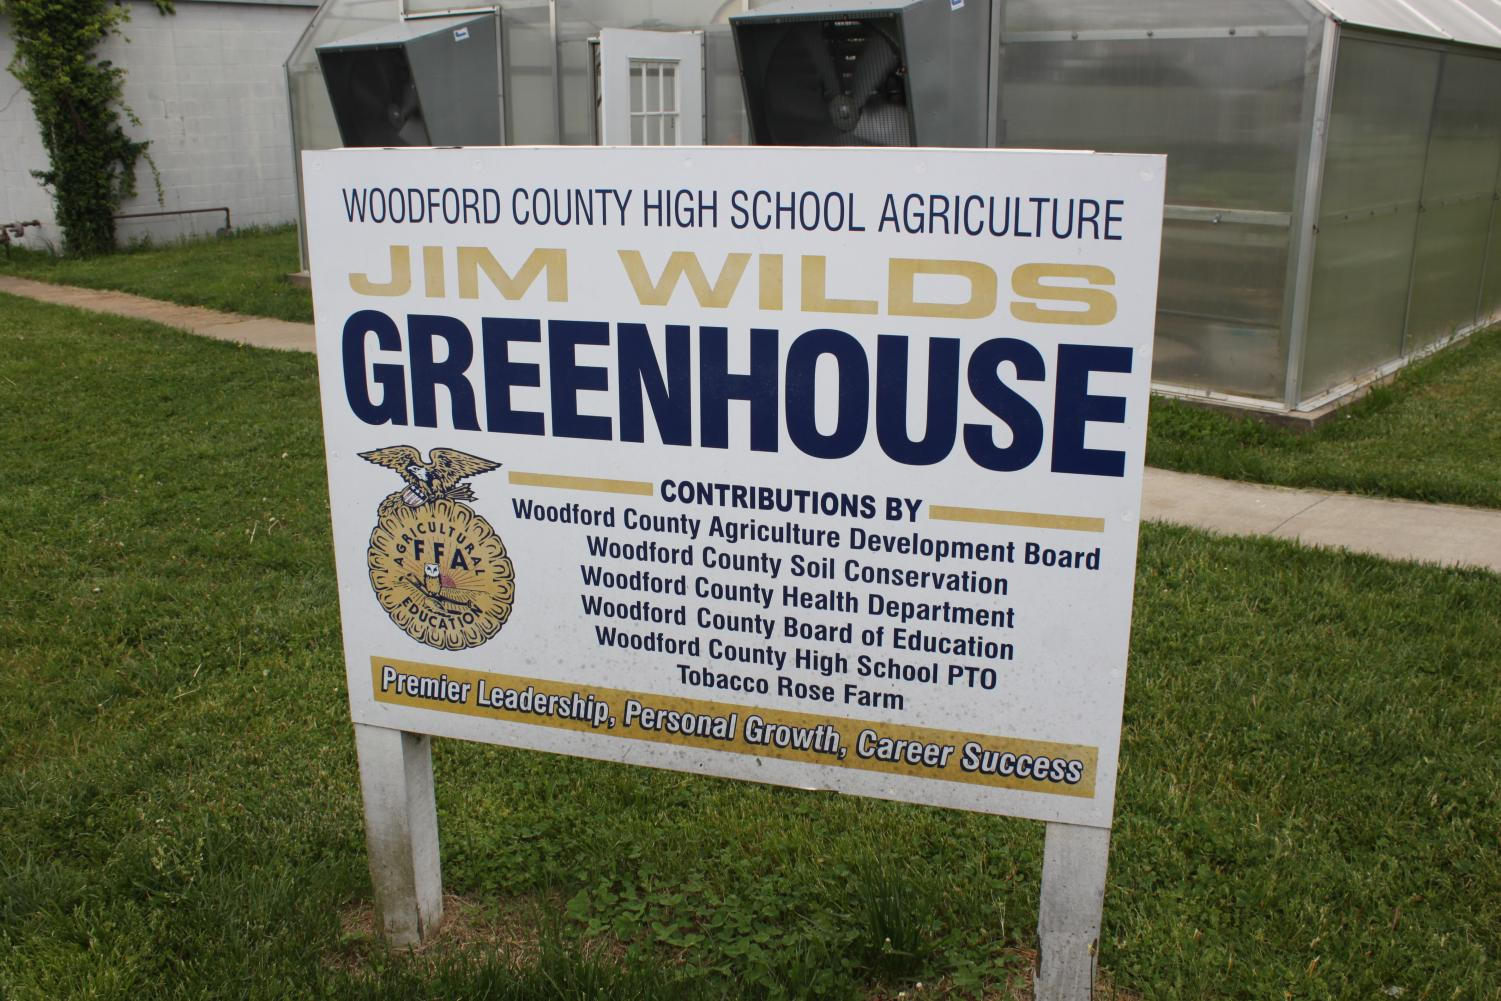 Entrance Sign for the WCHS Greenhouse